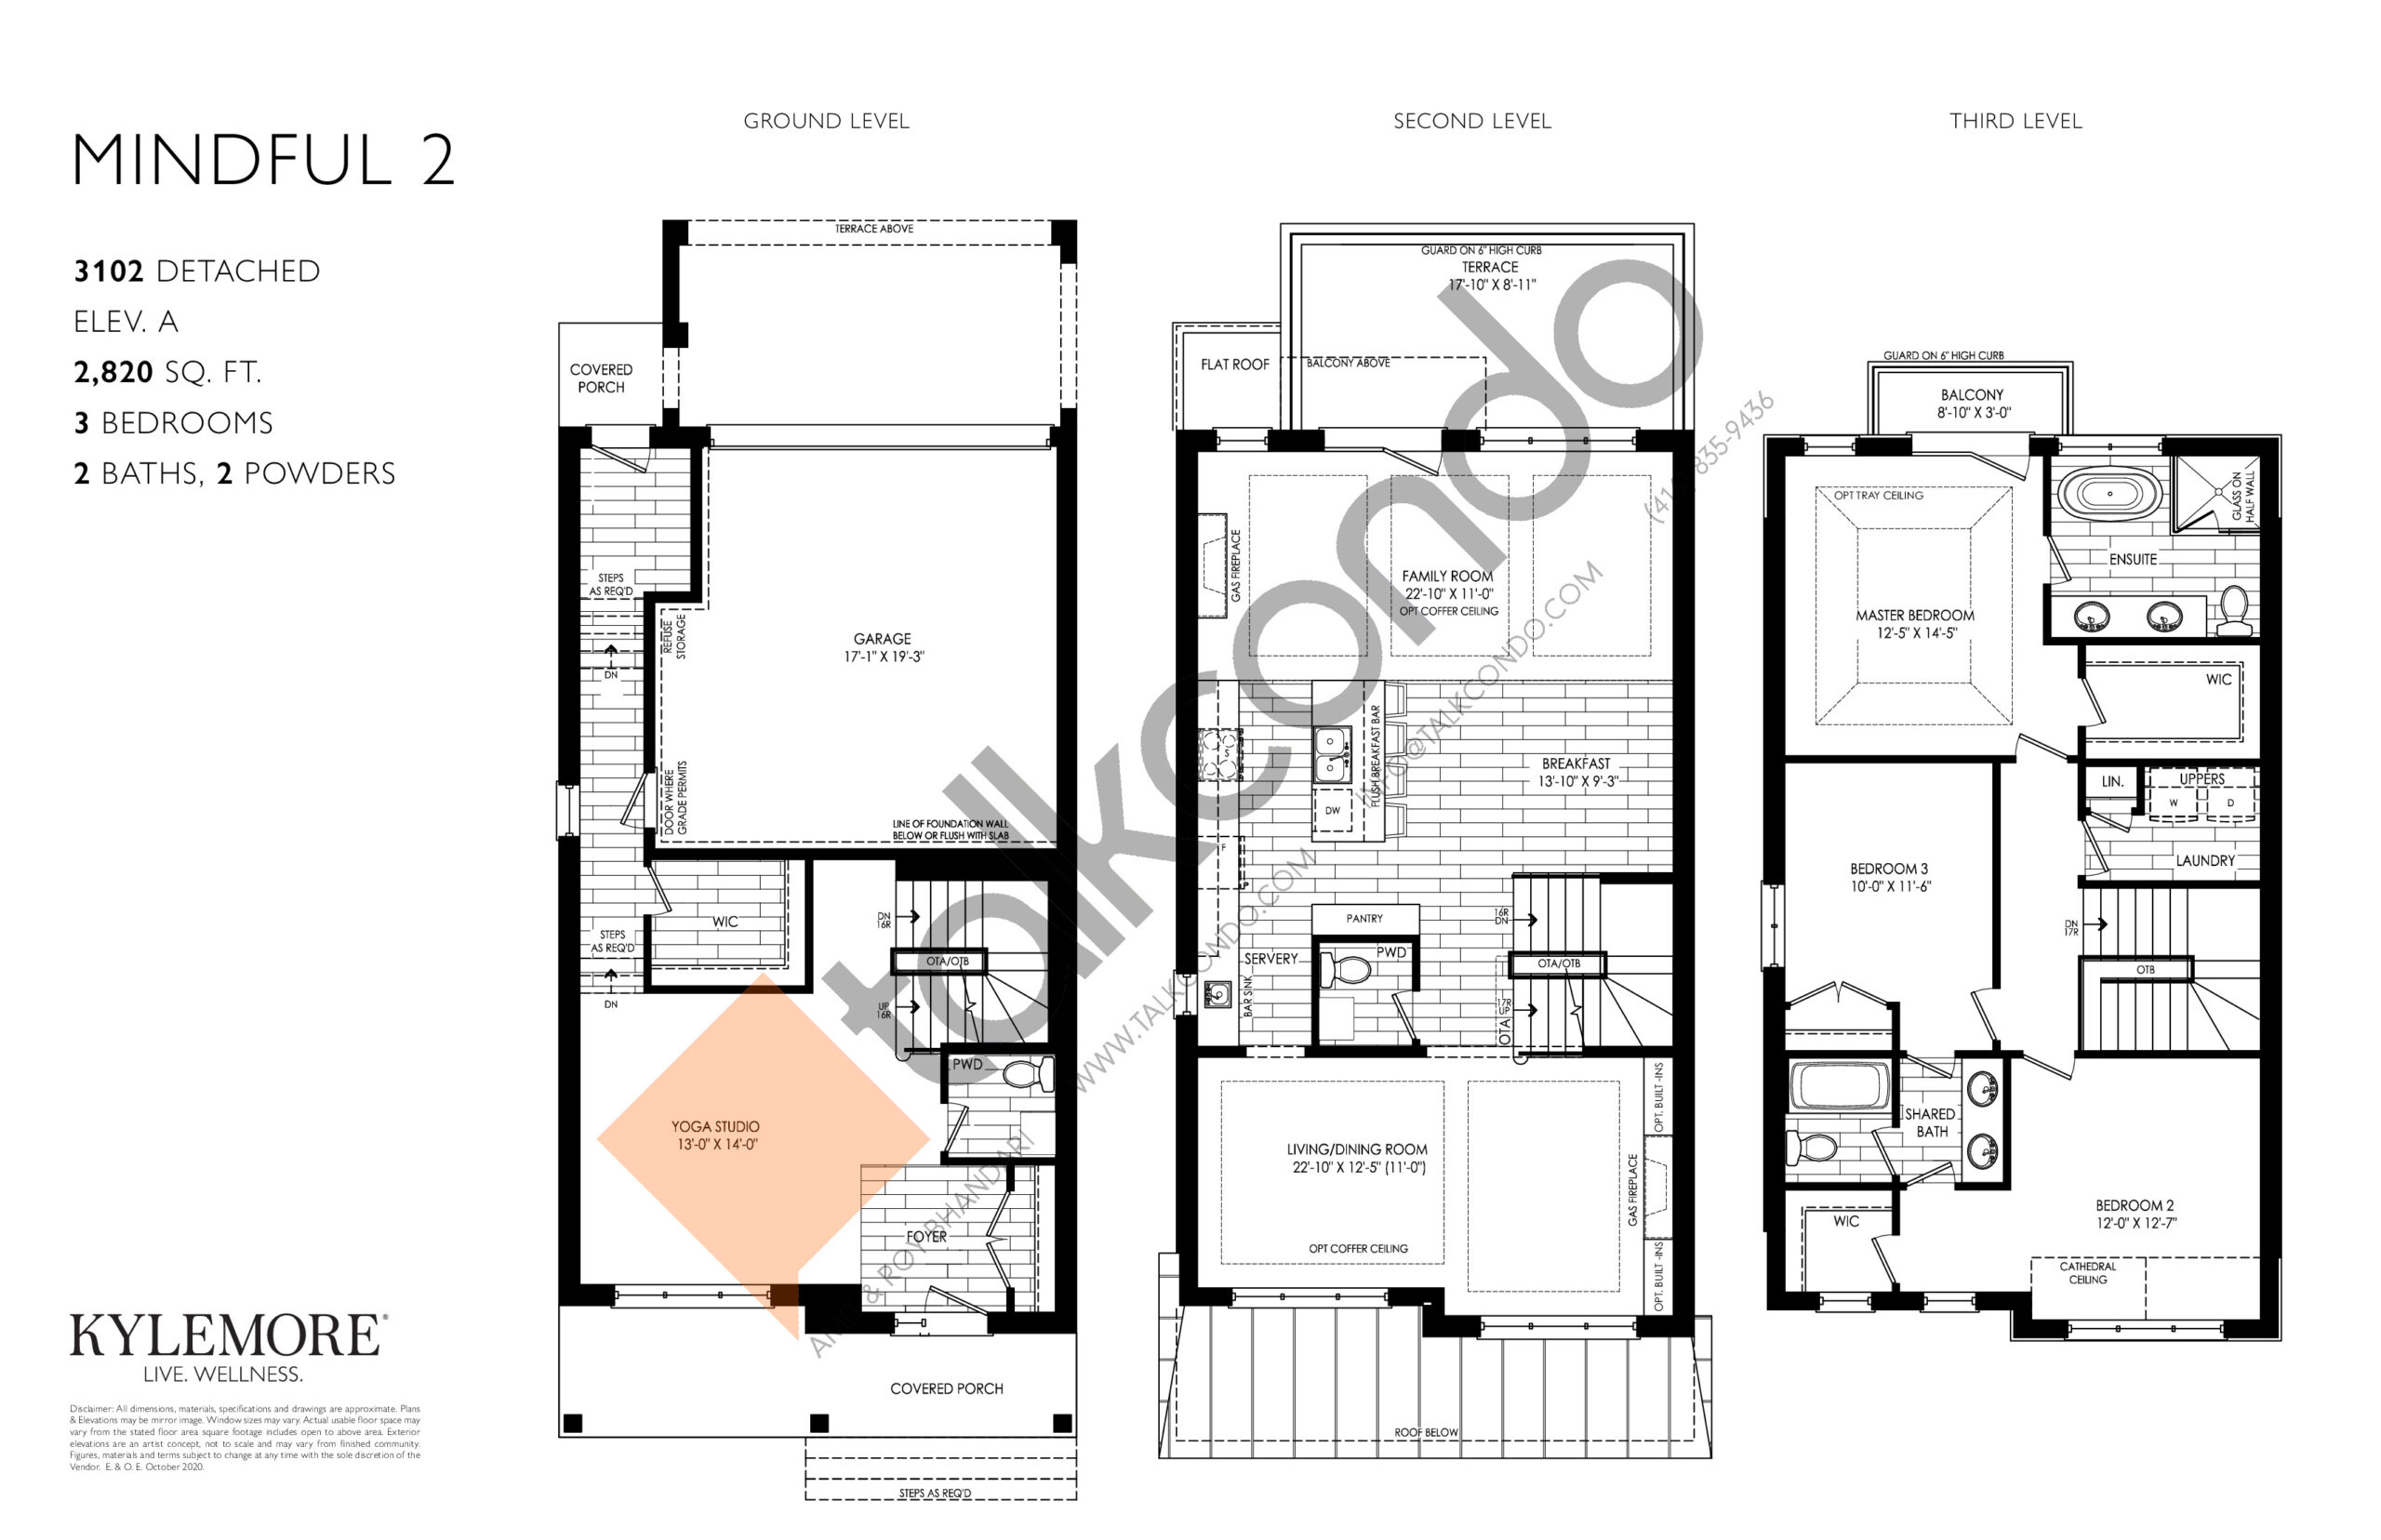 Mindful 2 Floor Plan at Angus Glen South Village - 2820 sq.ft